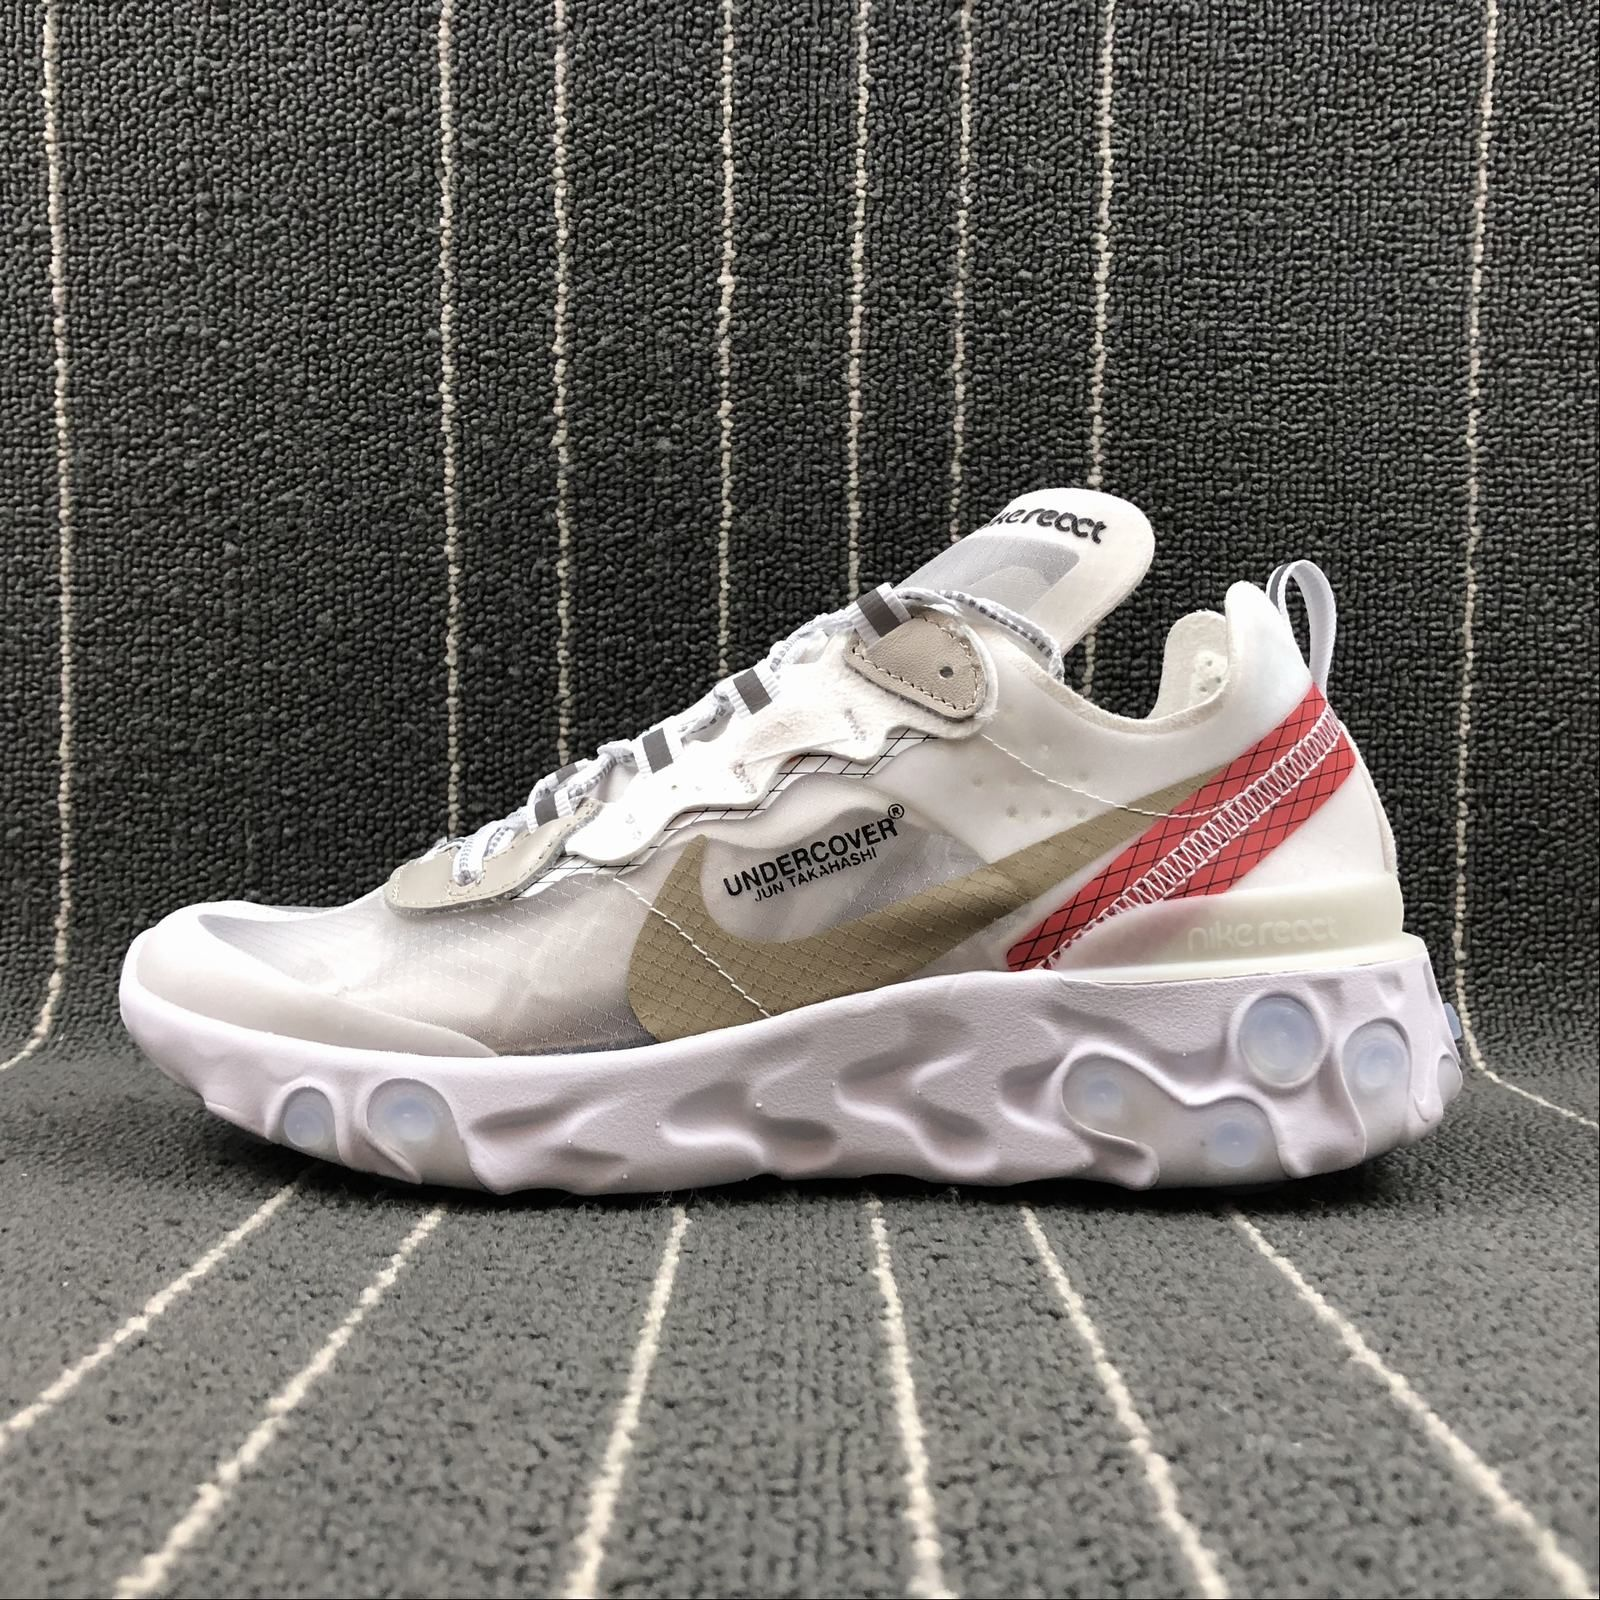 Undercover x Nike React Element 87 White Cream Red For Sale – Hoop Jordan bb74245a1862